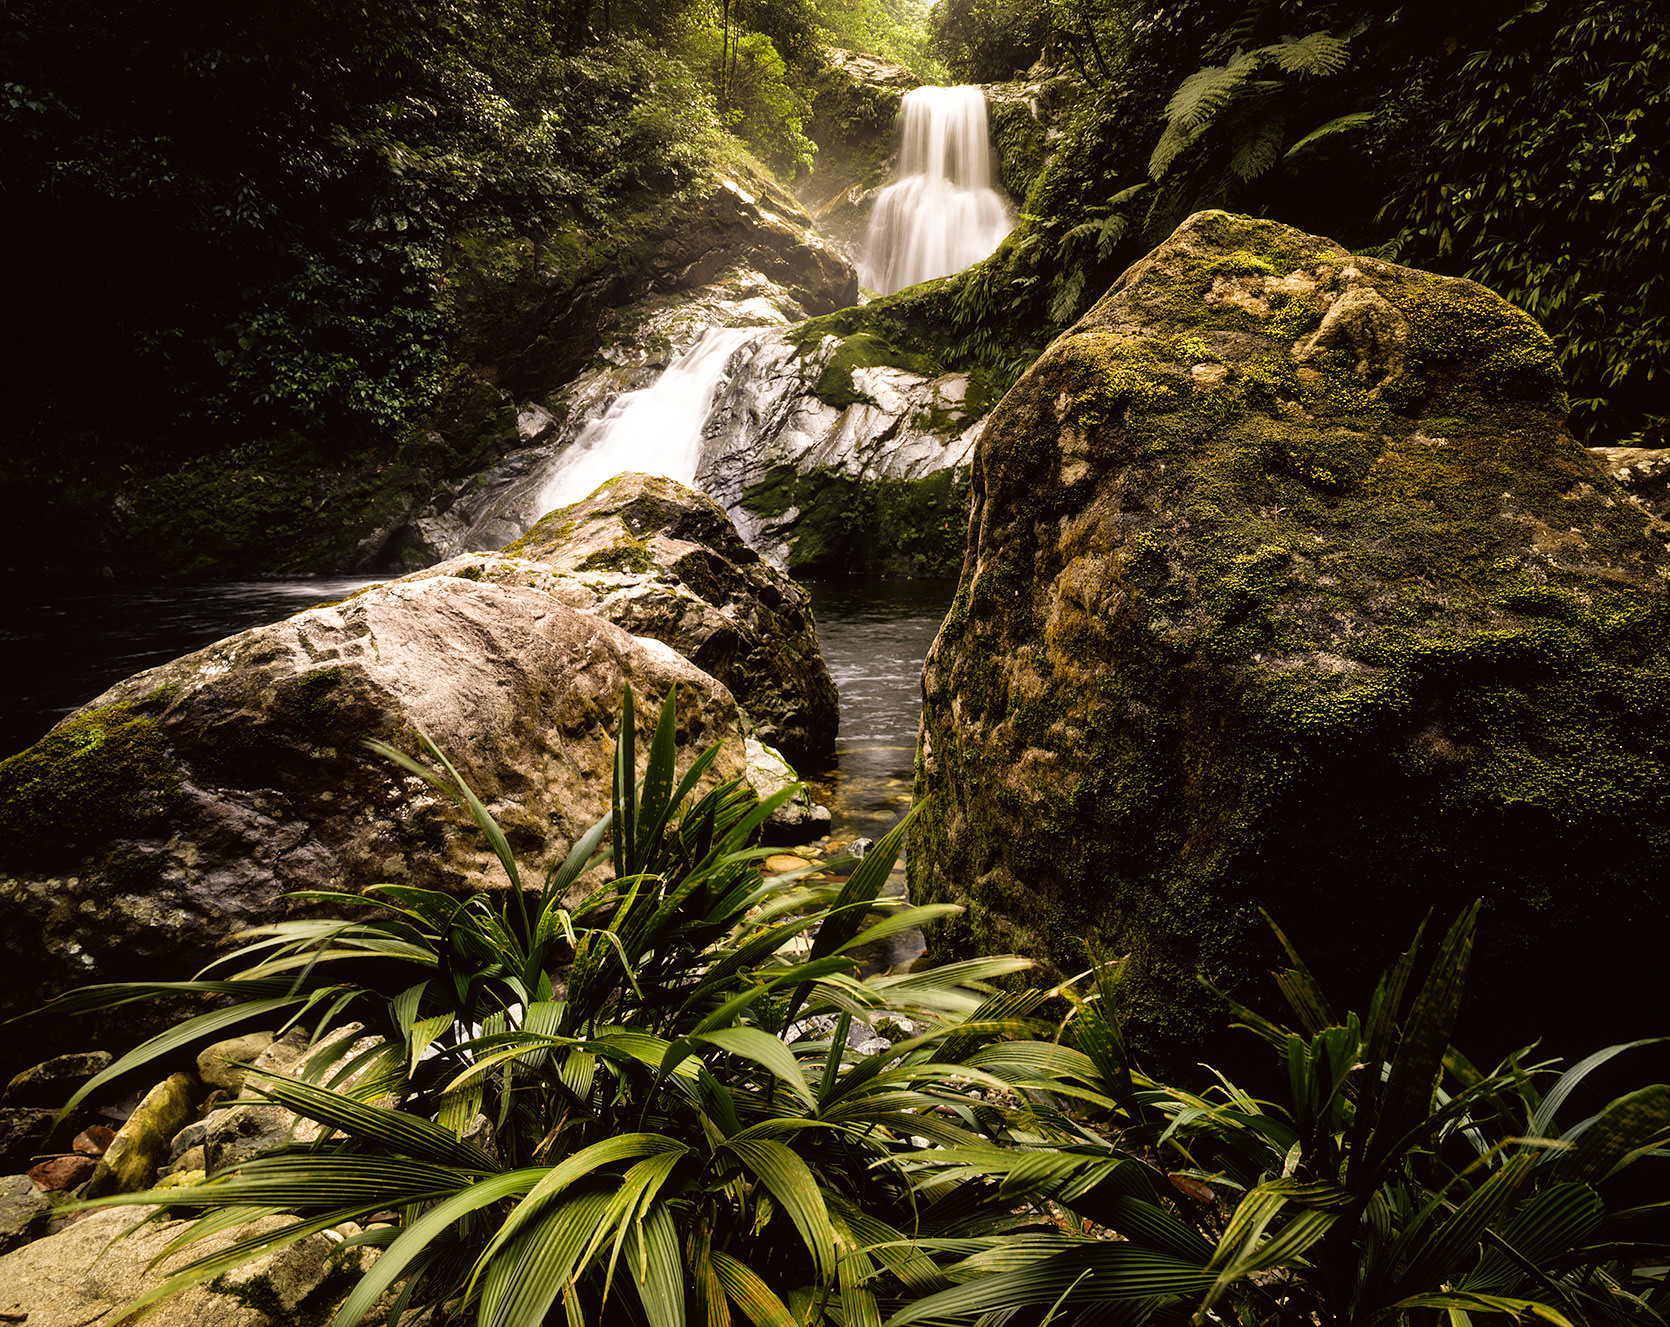 Beautiful waterfall in the Pico Bonito National Park in Honduras.